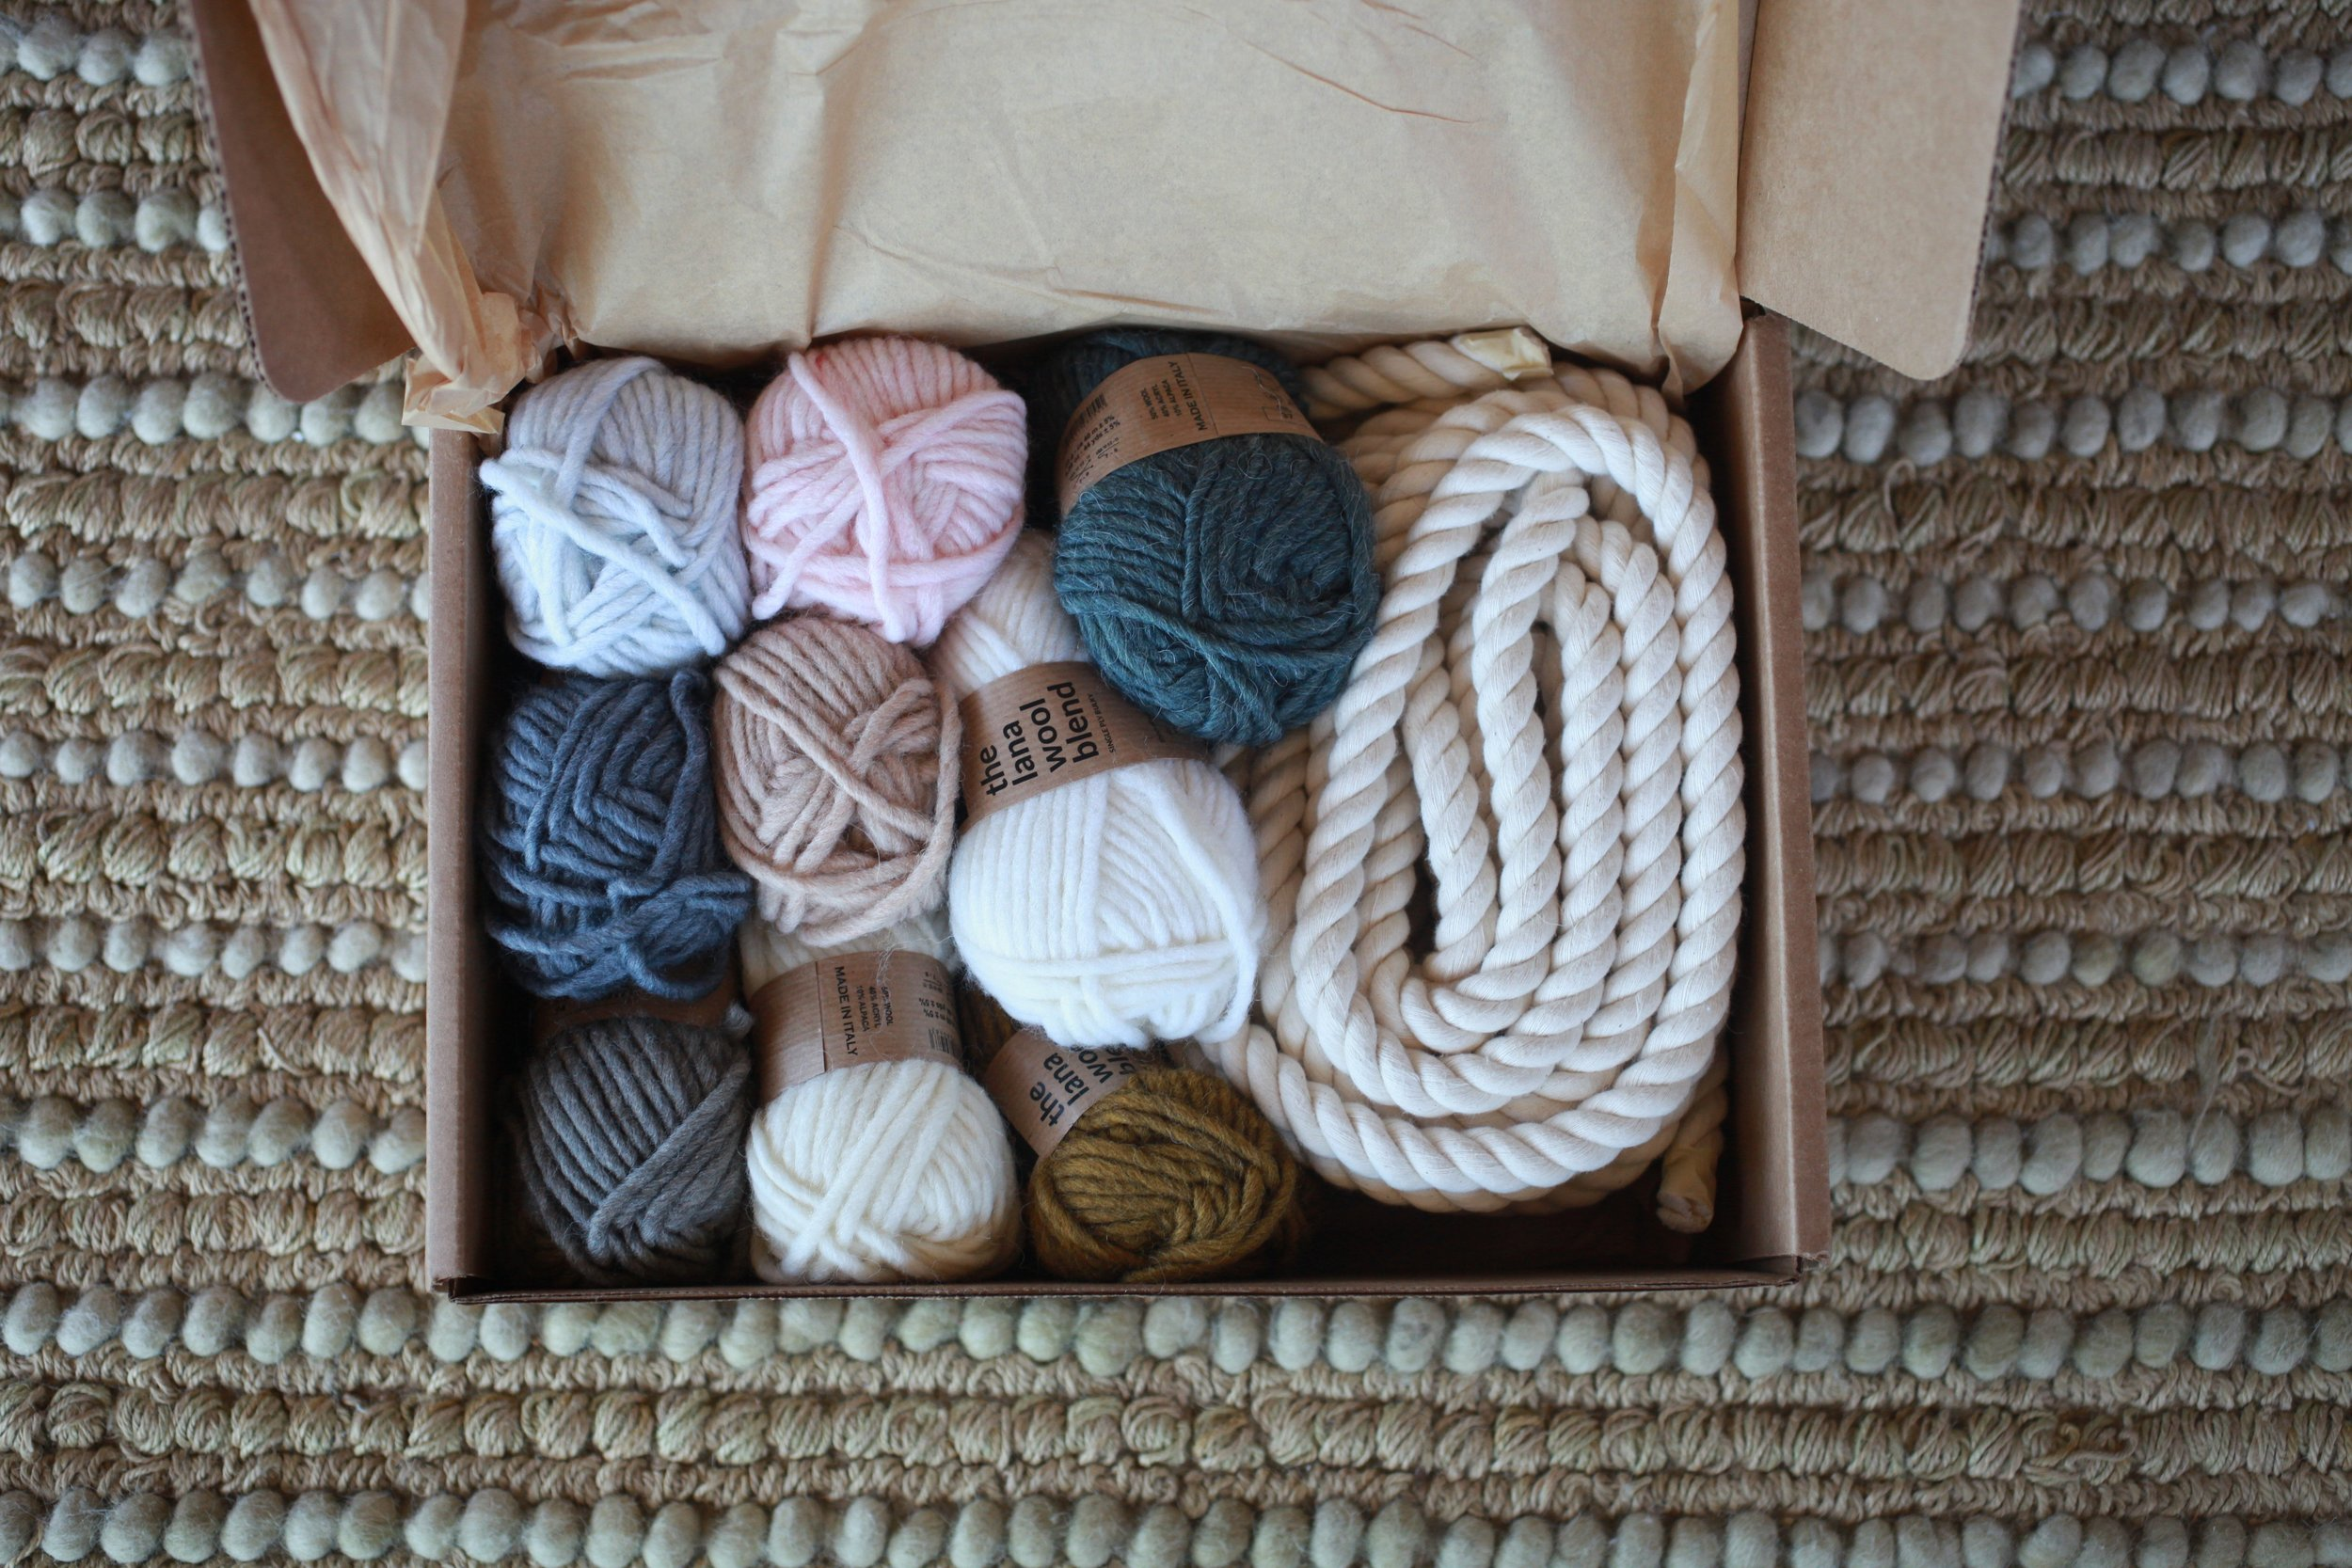 Unsponsored review for The Crafter's Box: My first month's box was Fiber Wrapped Rainbow in a box